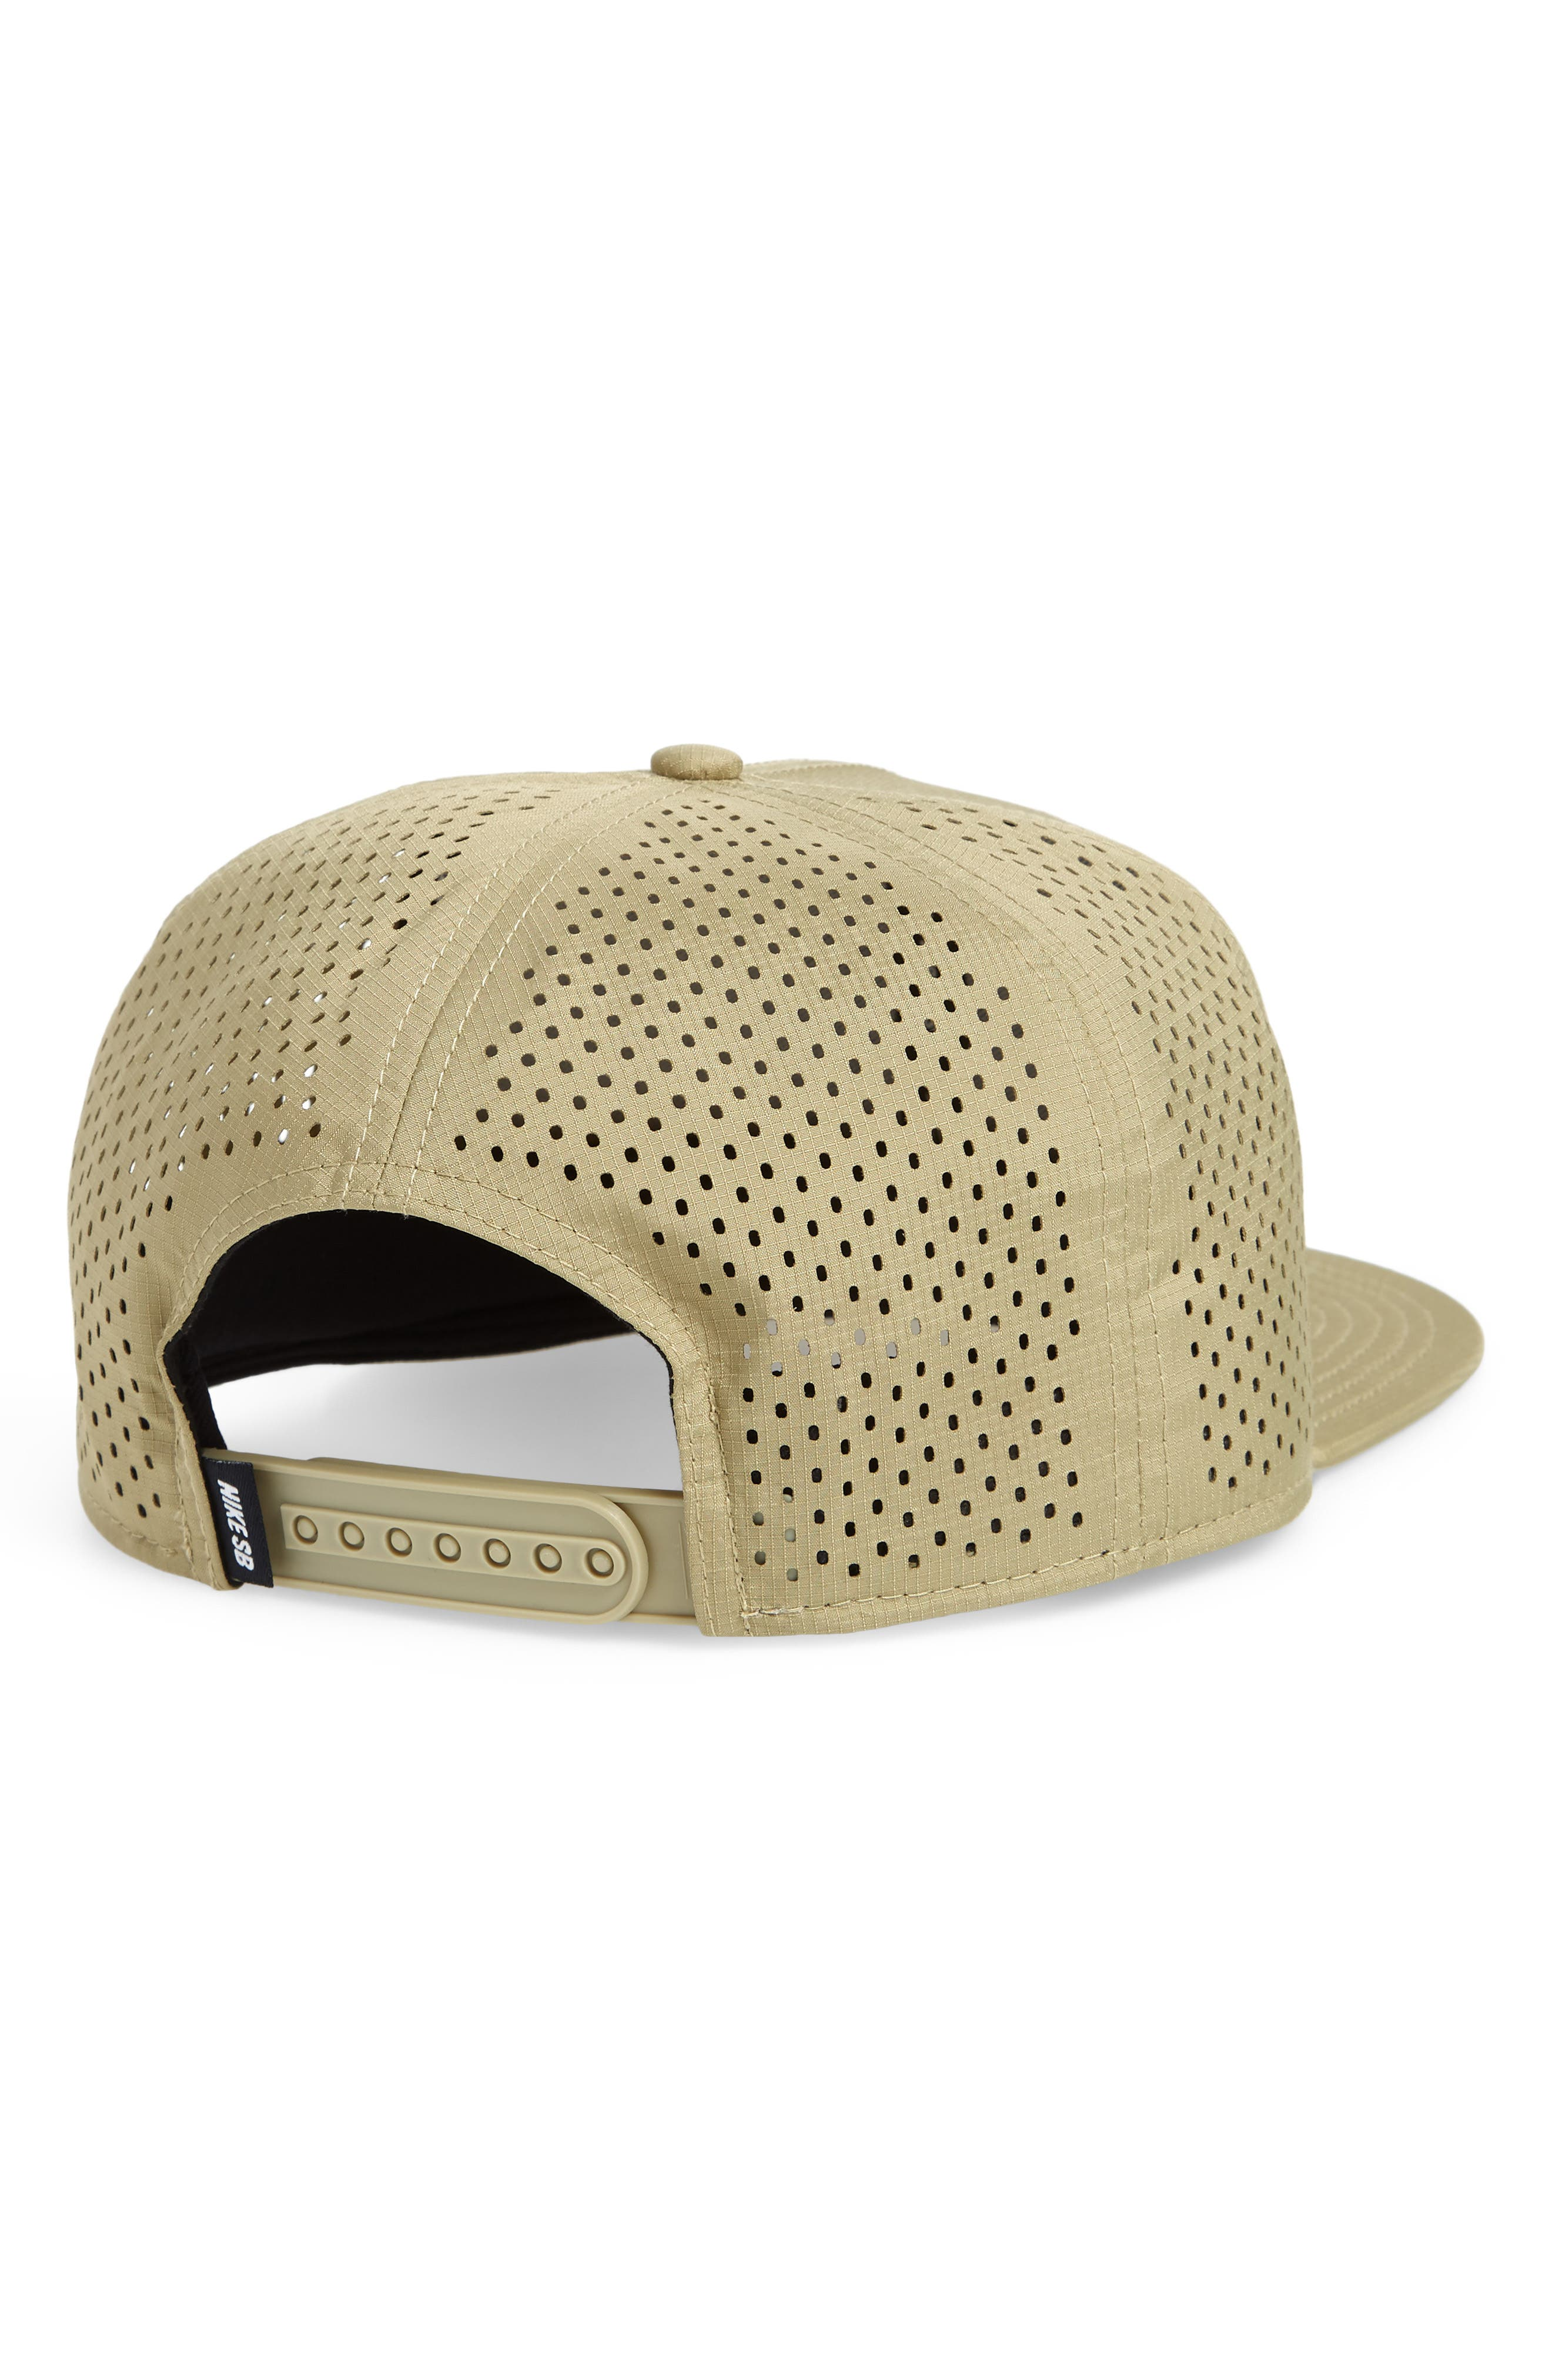 Performance Trucker Hat,                             Alternate thumbnail 2, color,                             Neutral Olive/ Olive/ Sequoia